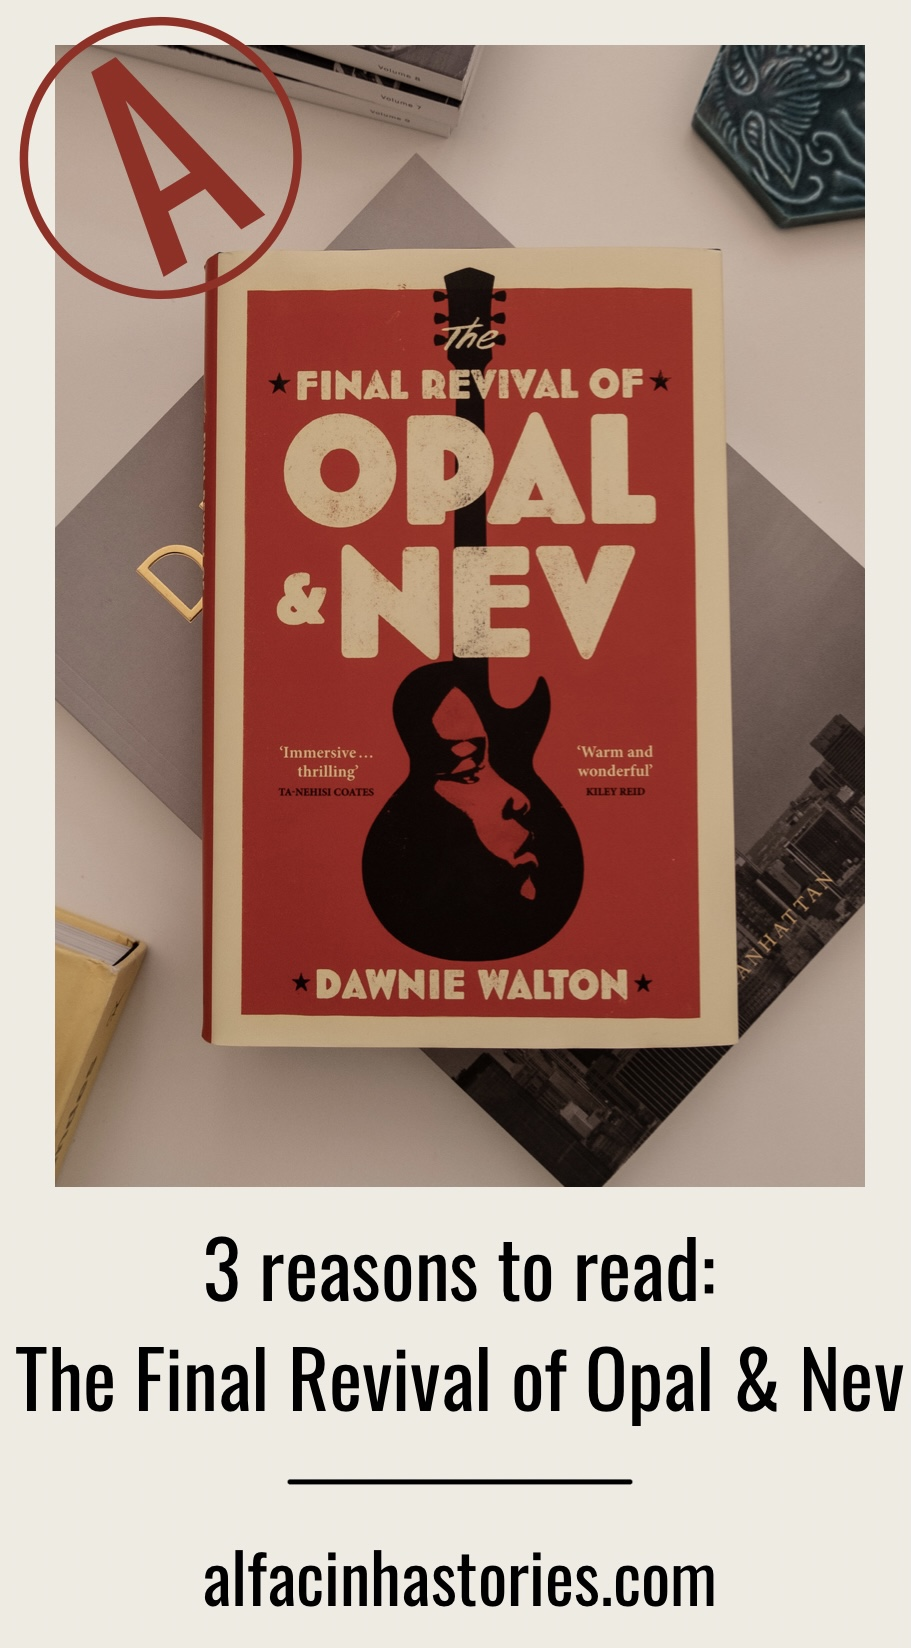 3 reasons to read 'The Final Revival of Opal & Nev'